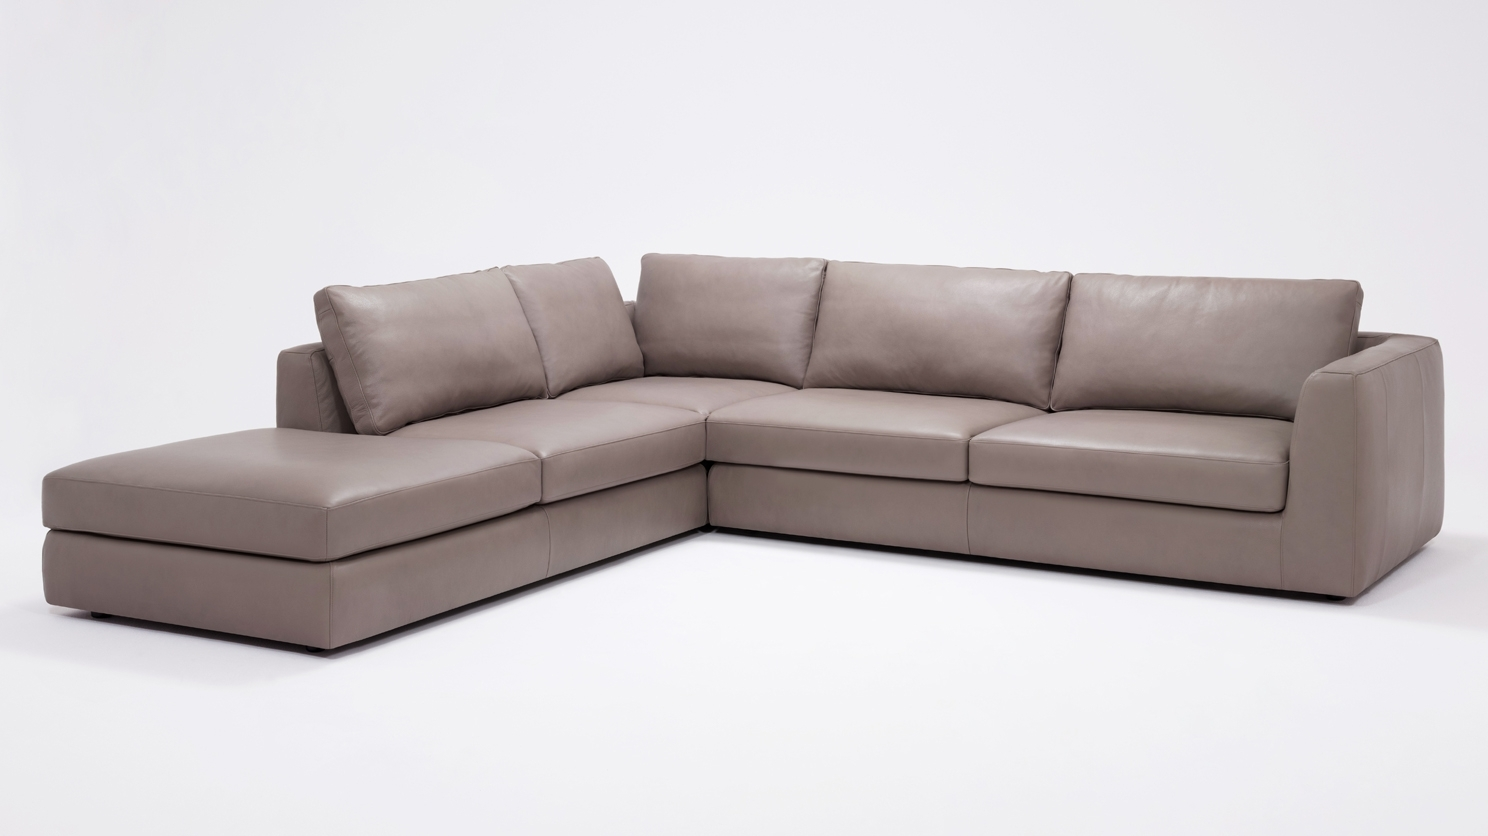 Cello 3 Piece Sectional Sofa With Backless Chaise – Leather (View 1 of 20)